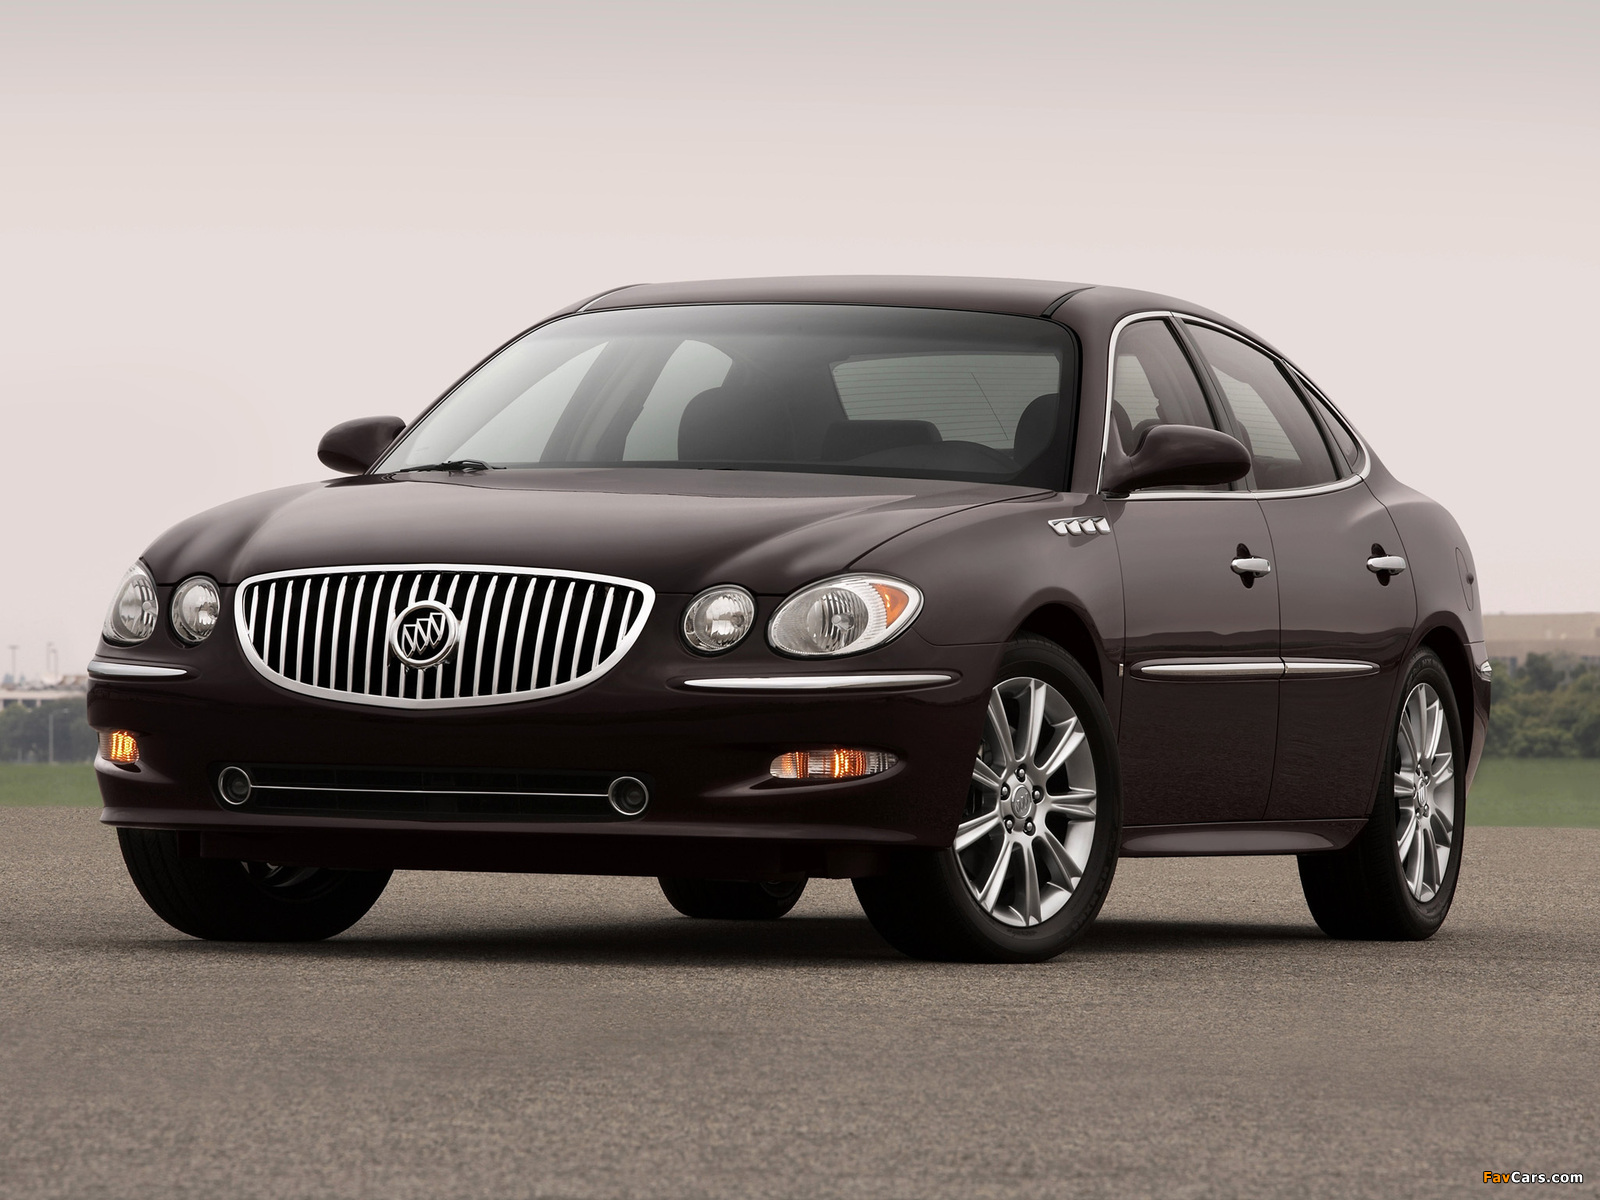 Buick Lacrosse Super 2008 09 Images 122022 1600x1200 furthermore Mazda Rx8 Horsepower besides Watch furthermore Advert Chevy Cruze Is Delicately Awkward In Philippines  mercial besides Custom Jaguar Xj6 Pics. on buick ads